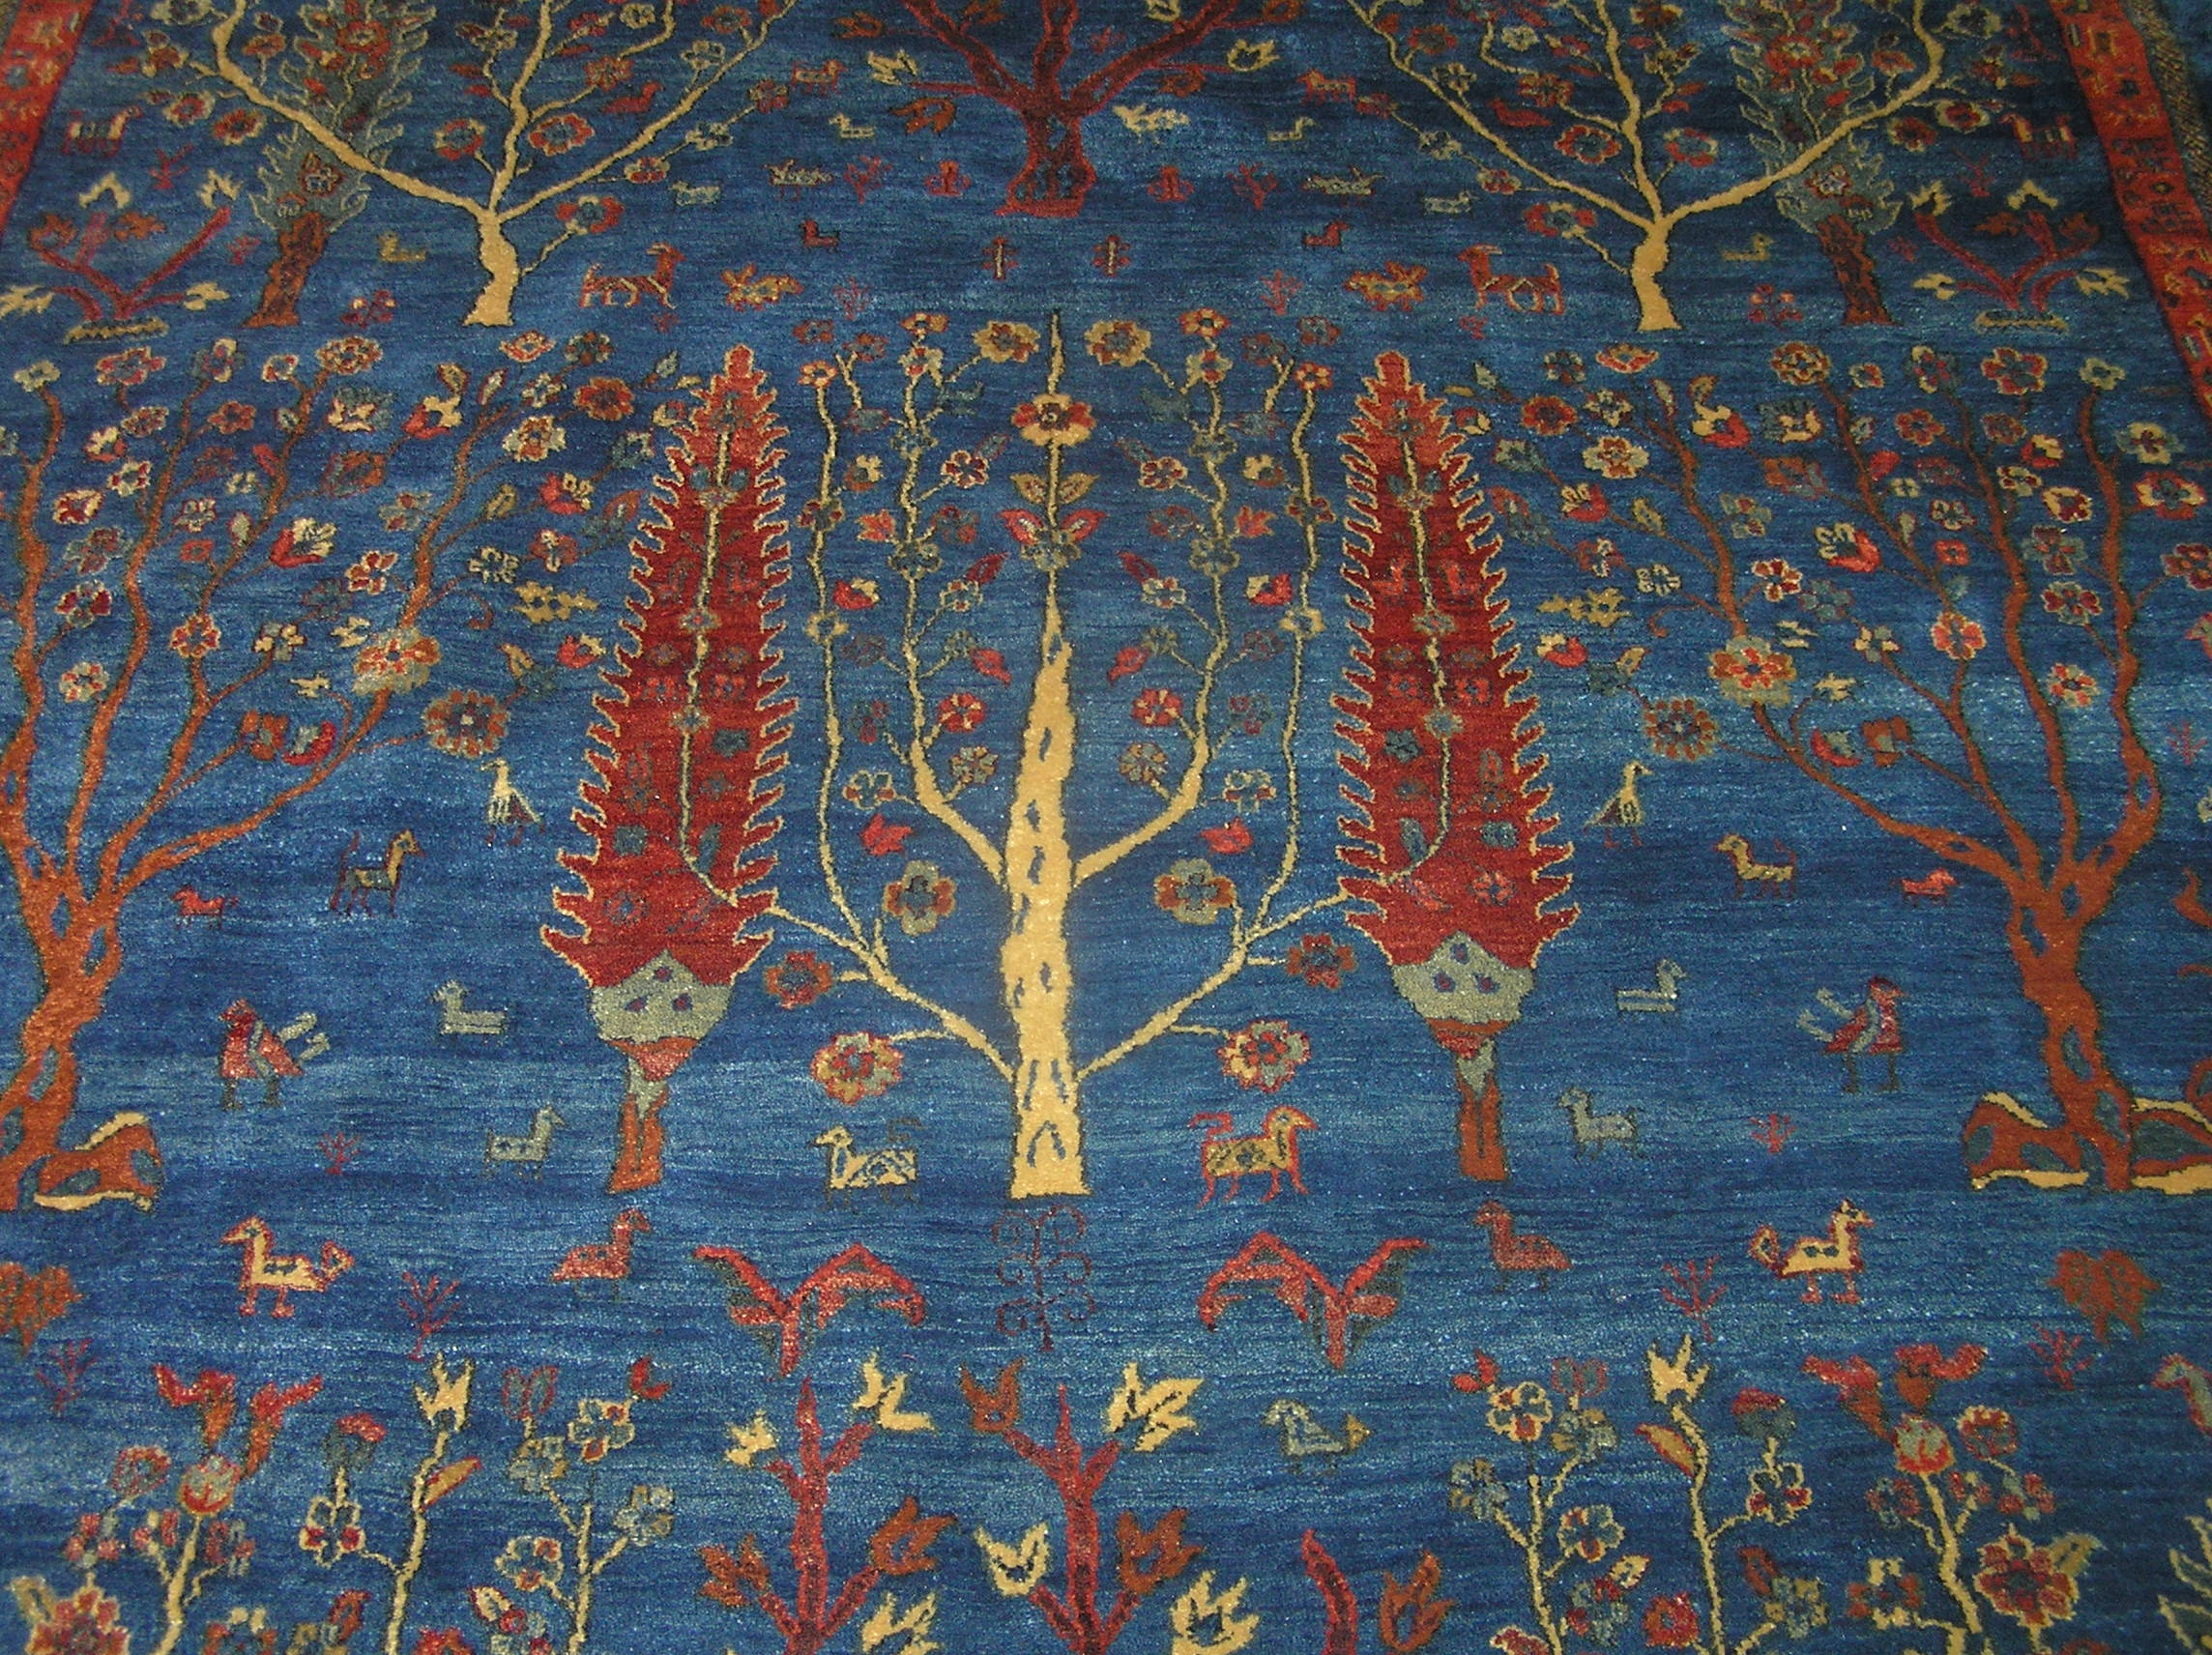 """#32b) 7'9"""" x 9'11"""" Tree of Life rug in beautiful blues and reds."""